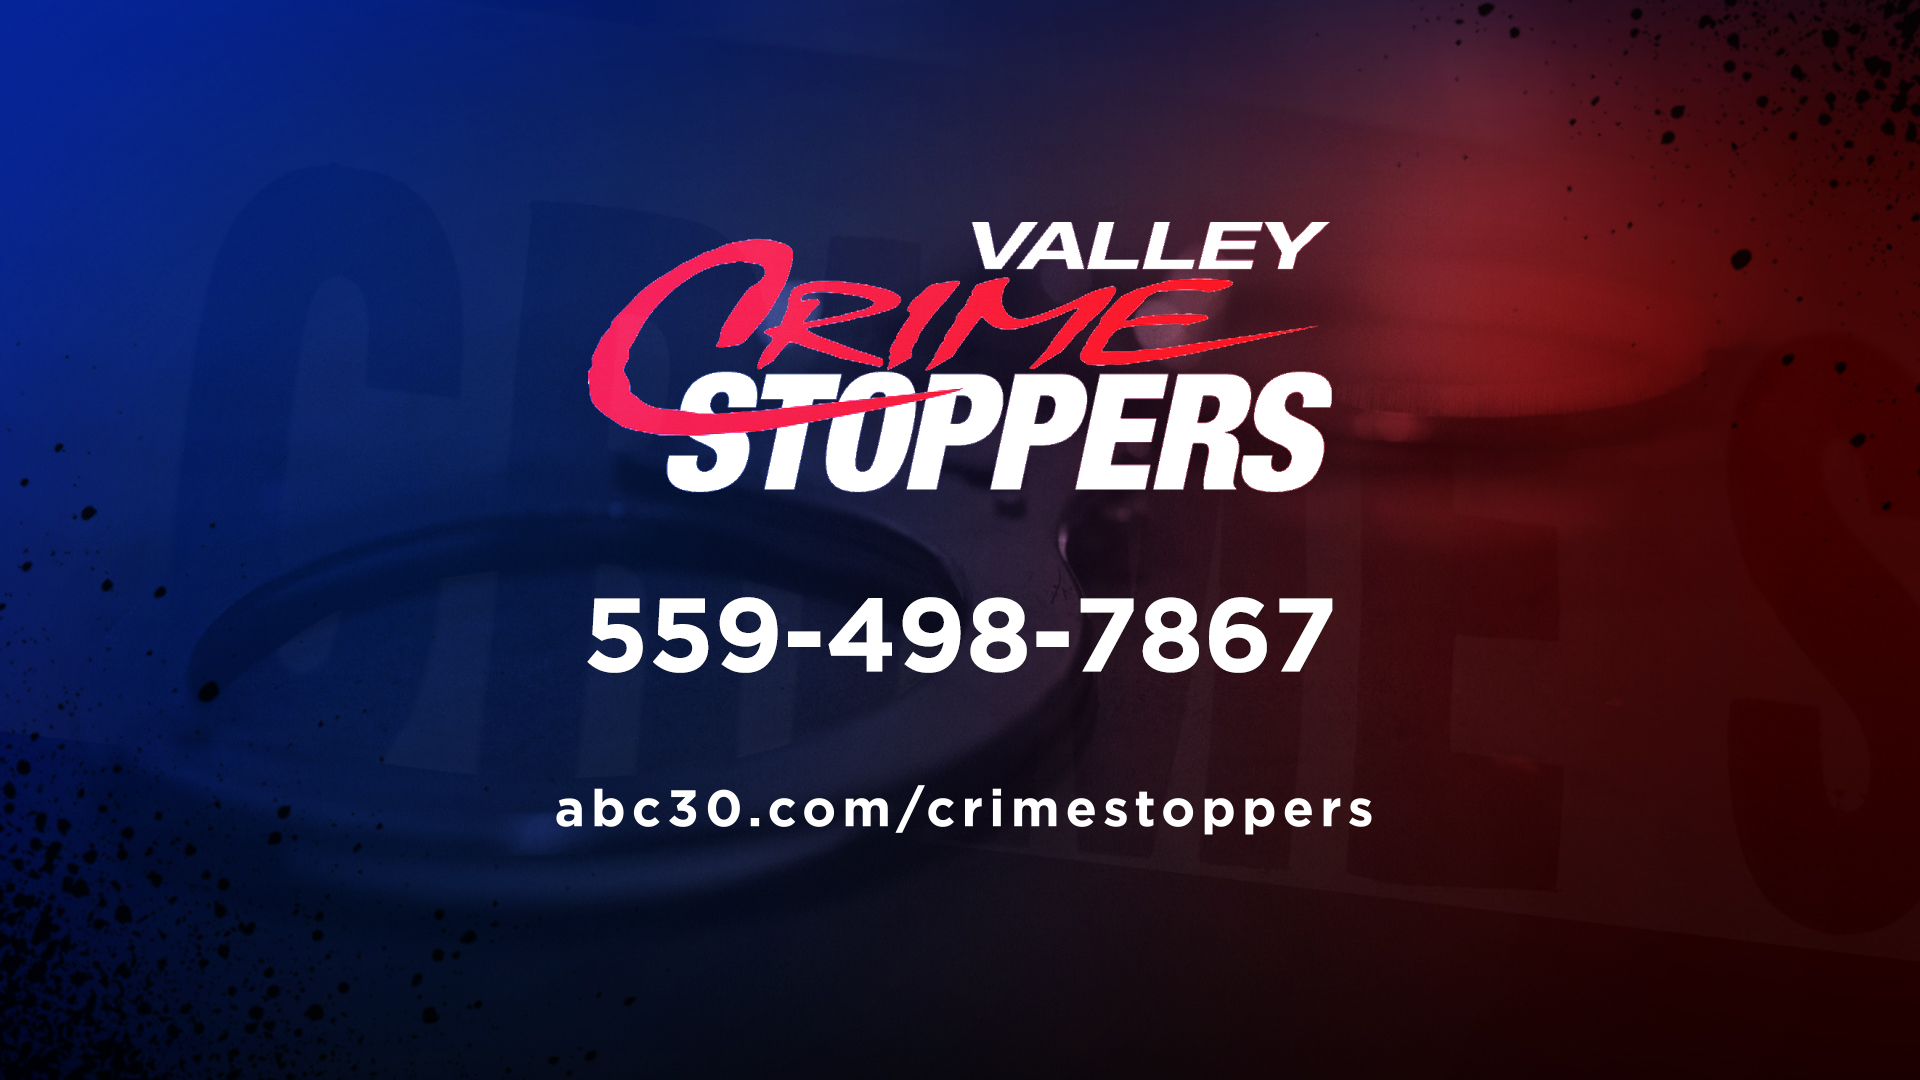 Report an anonymous tip to Valley Crime Stoppers